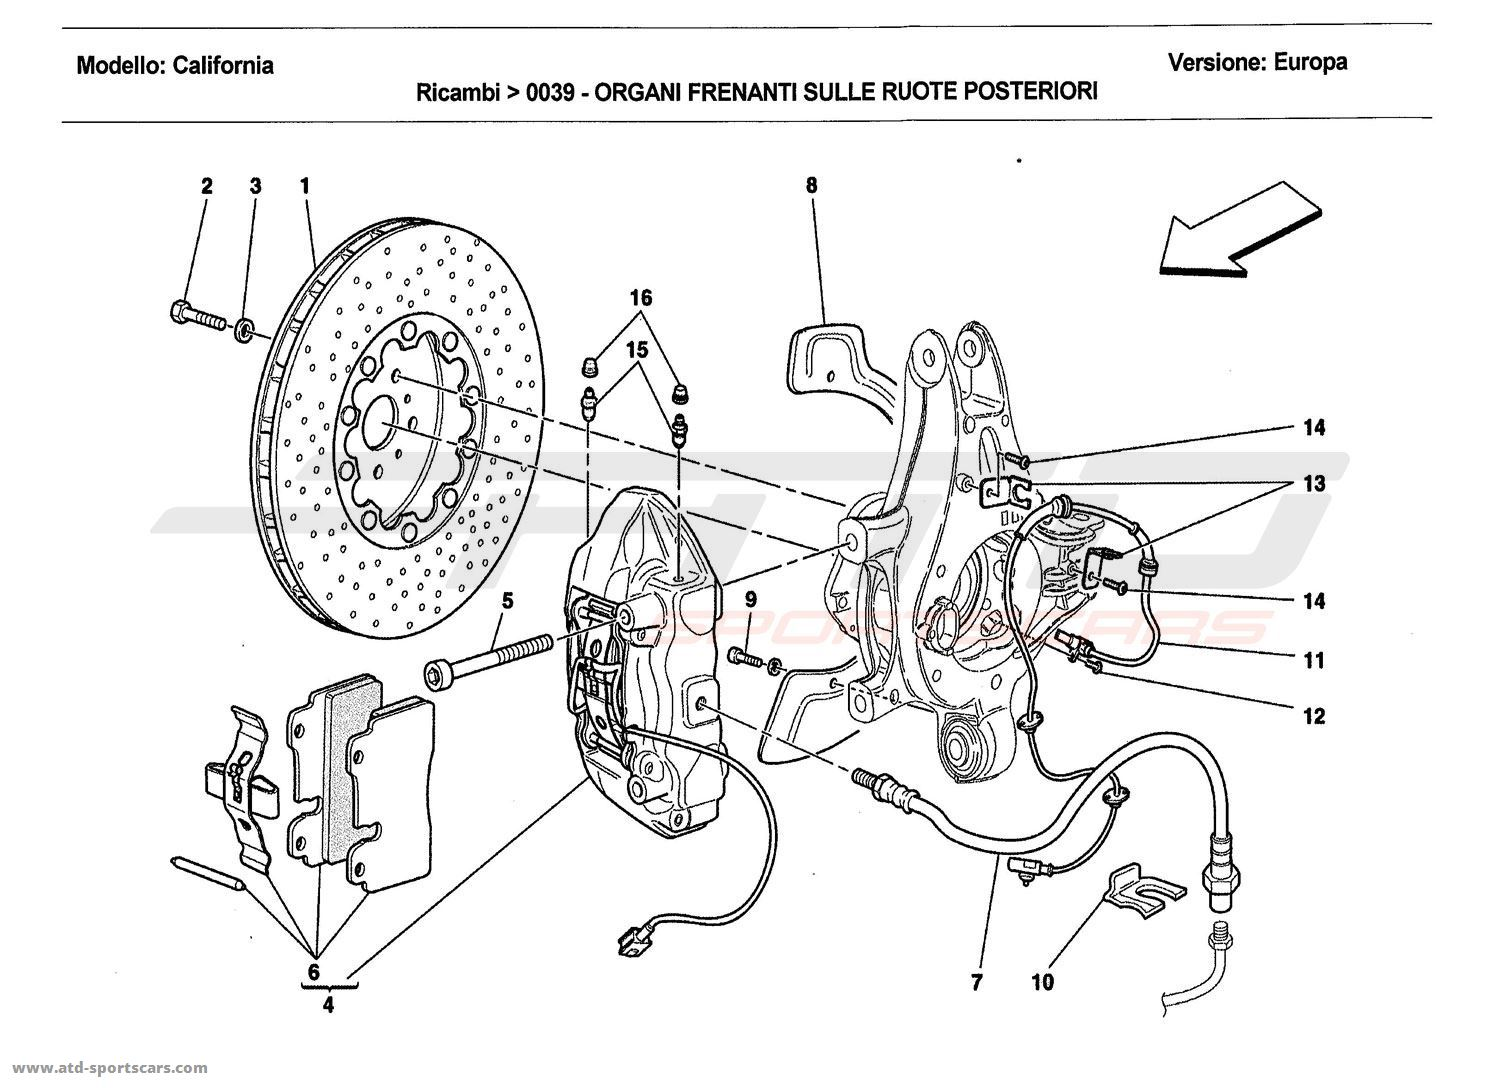 REAR WHEEL BRAKE SYSTEM COMPONENTS